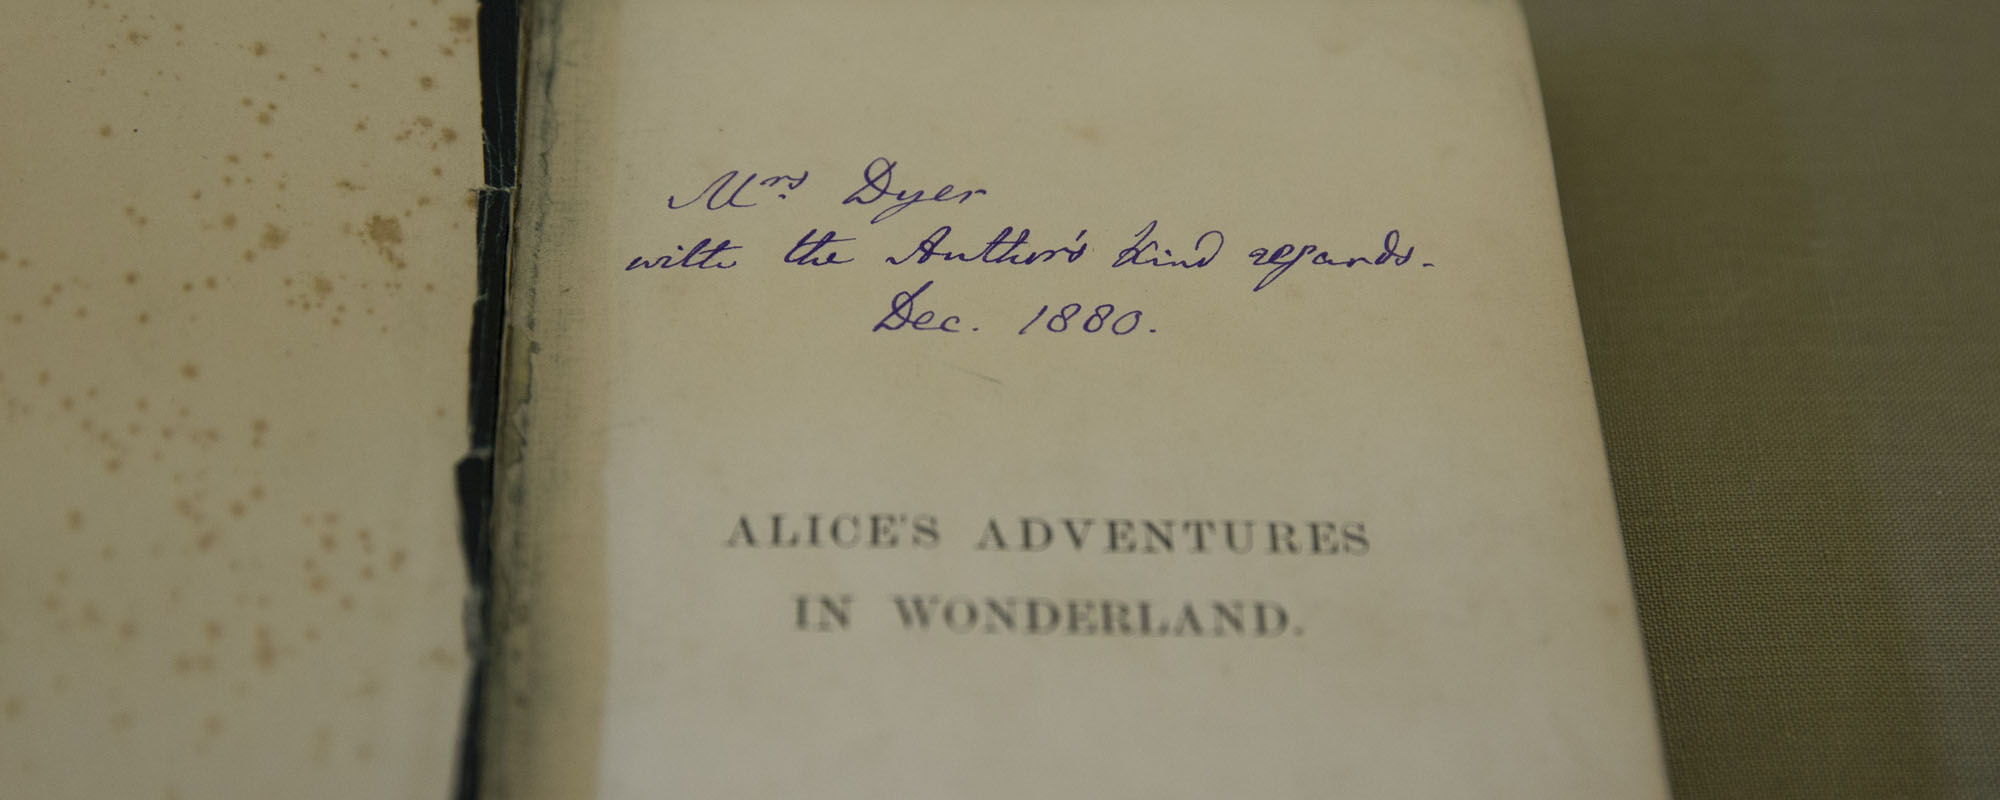 """Charles Dodgson, aka Lewis Carroll, signed the copy he gave his landlady in 1880 """"with the Author's kind regards."""" It seems he regularly inscribed his books from the """"author"""" rather than choose between his penname and real name, student curator Susan Swic"""